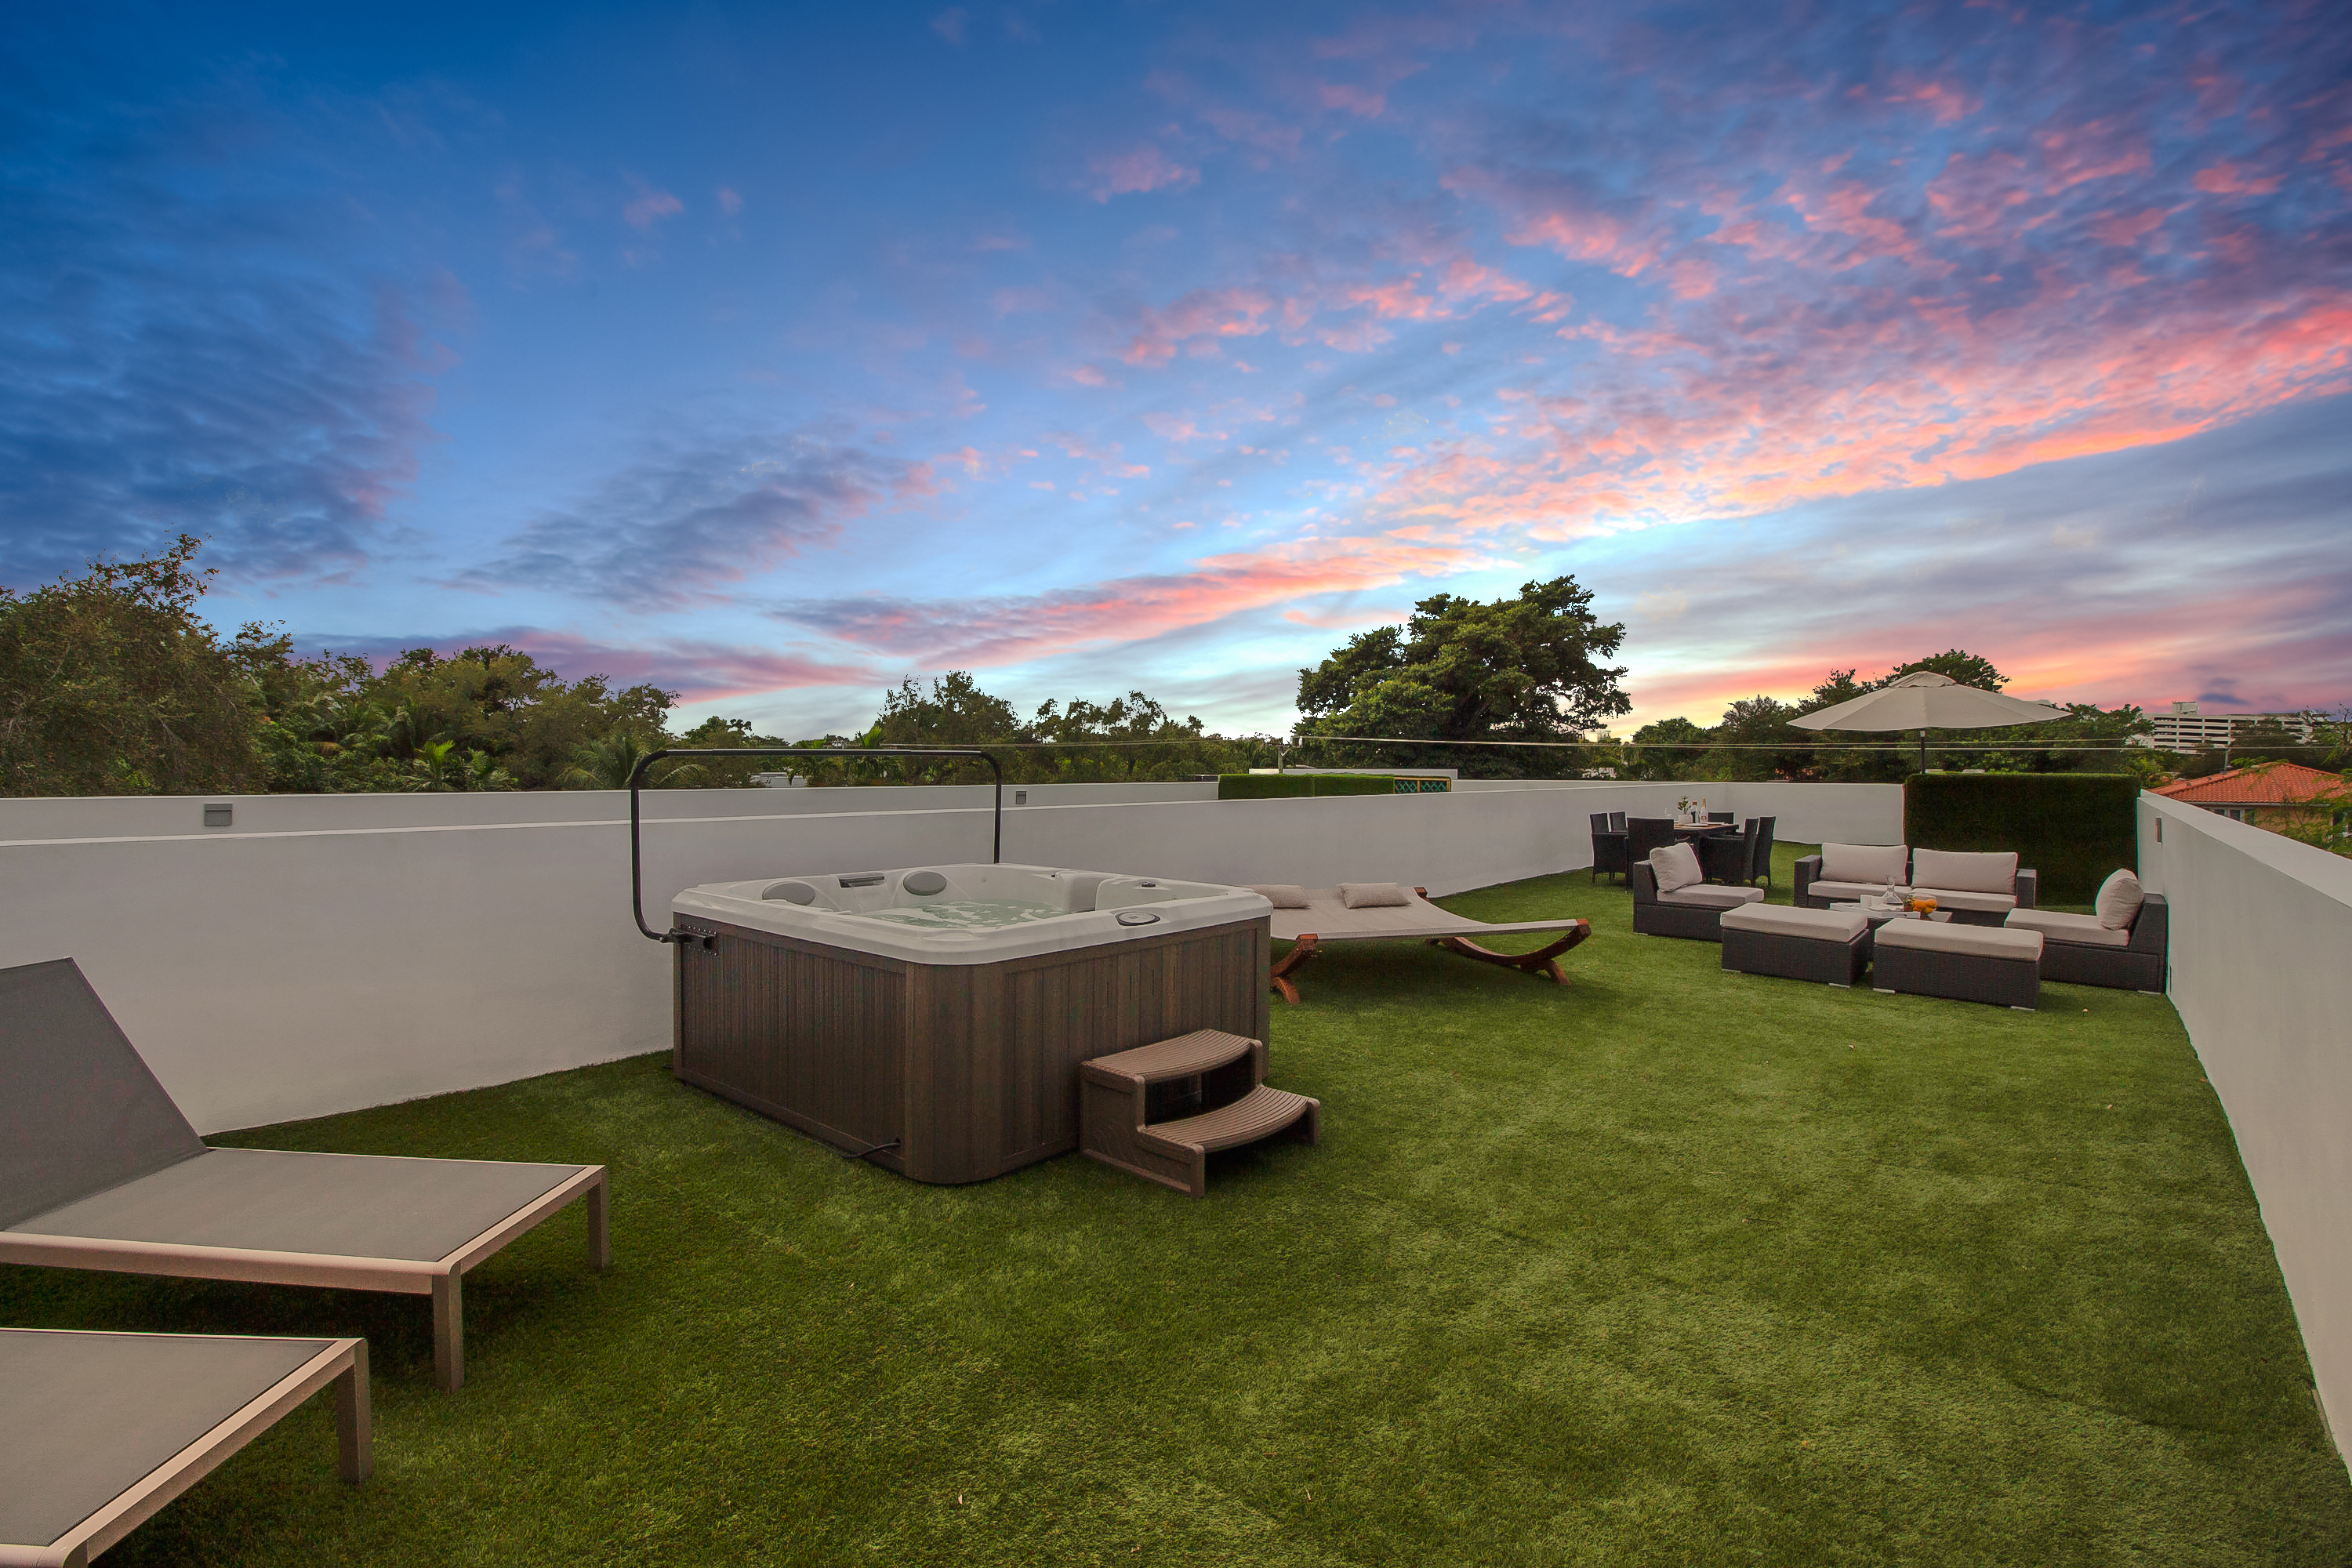 STUNNING MODERN HOME WITH ROOFTOP JACUZZI AND INFI